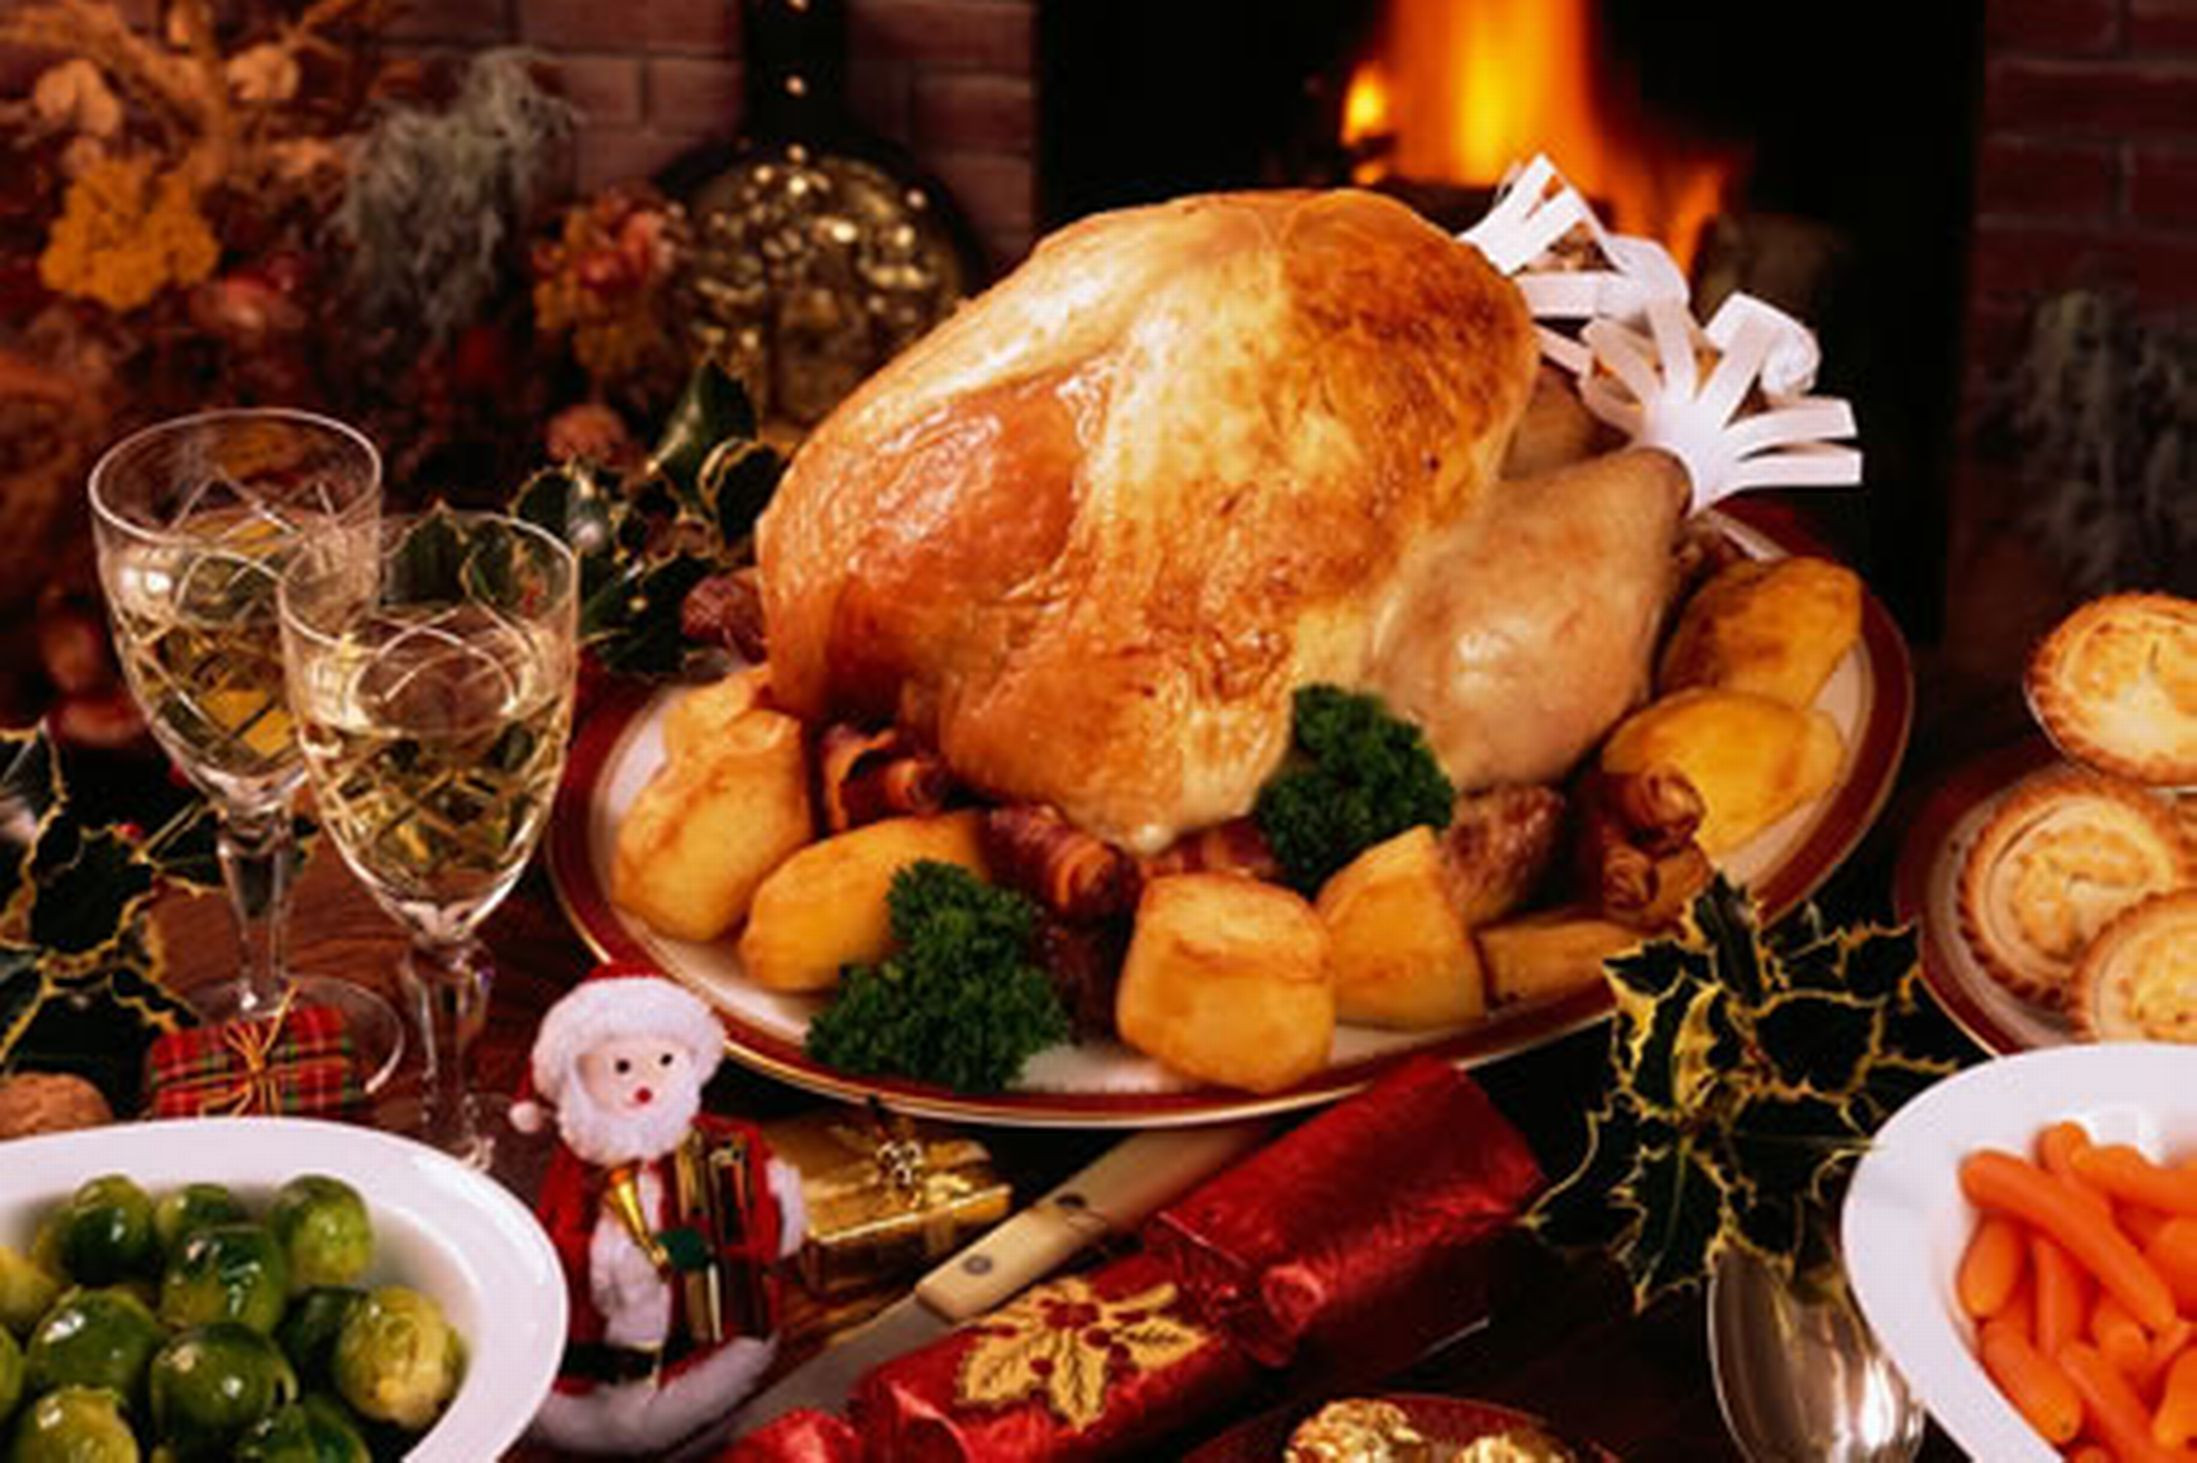 Christmas Turkey Dinner  Christmas Dinner 2nd December 2016 Calon